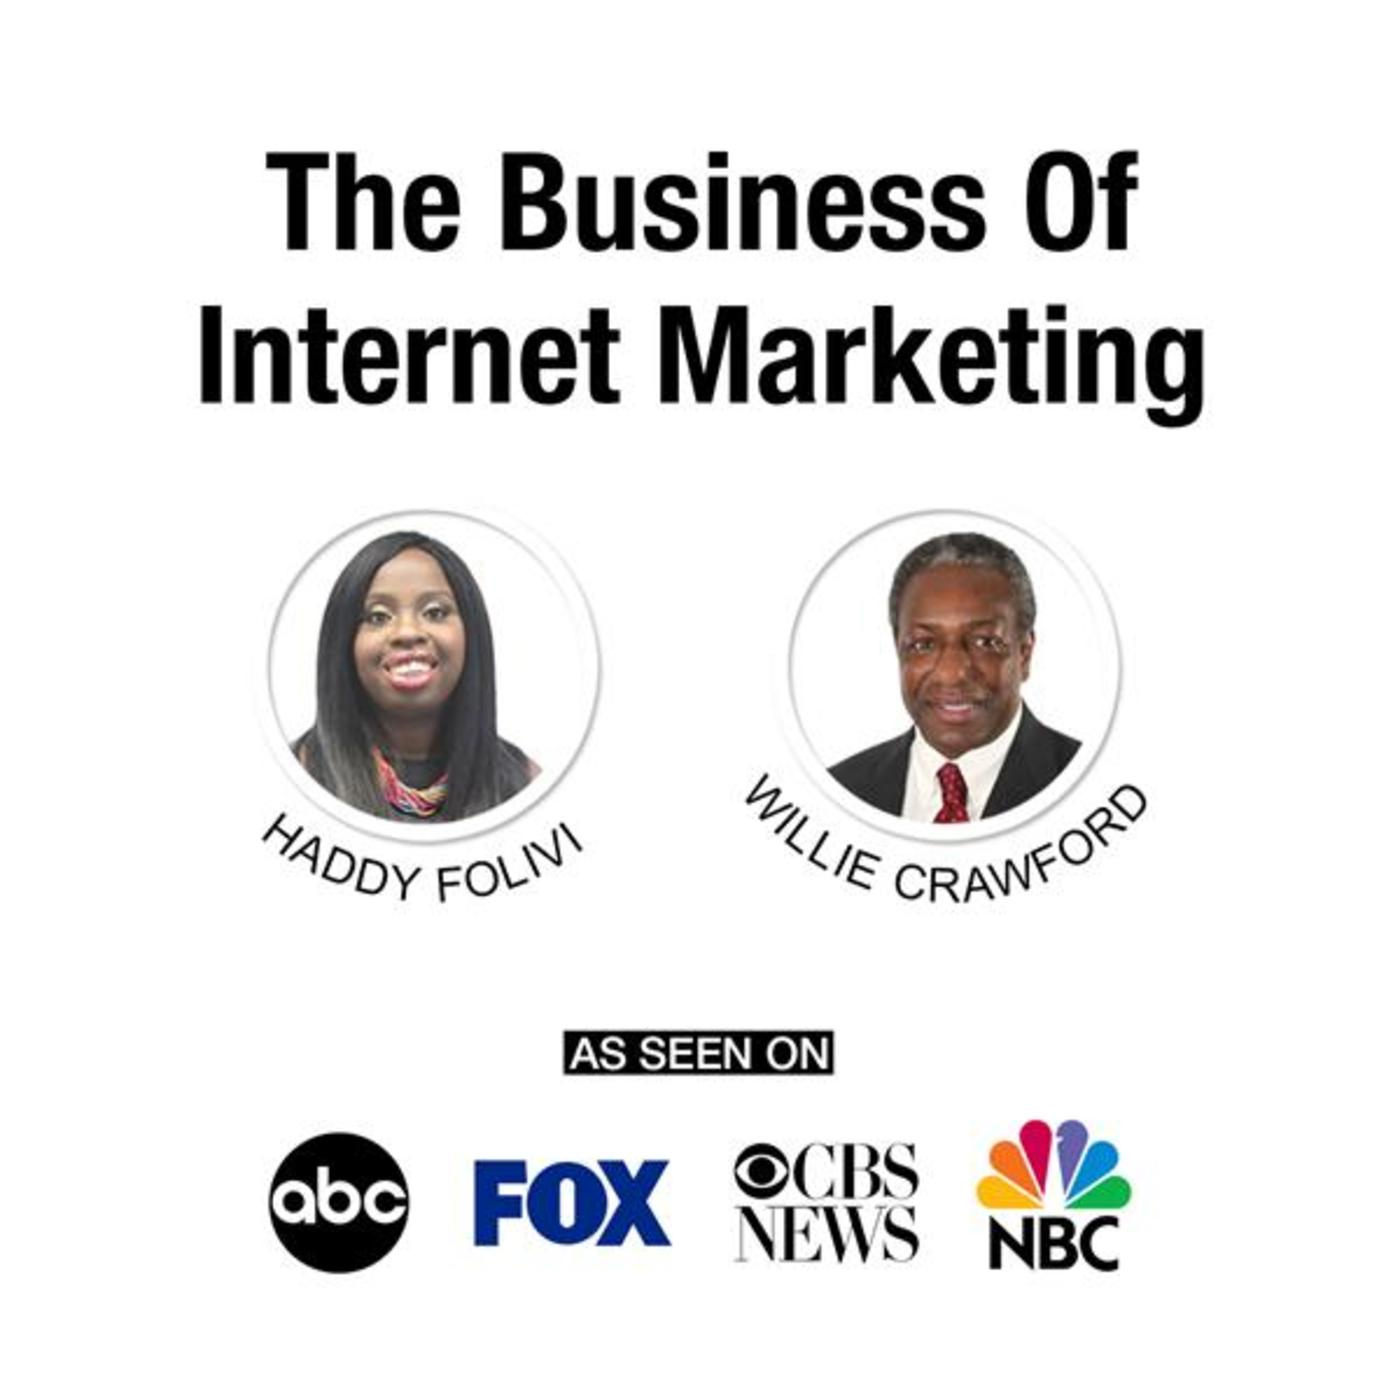 The Business Of Internet Marketing